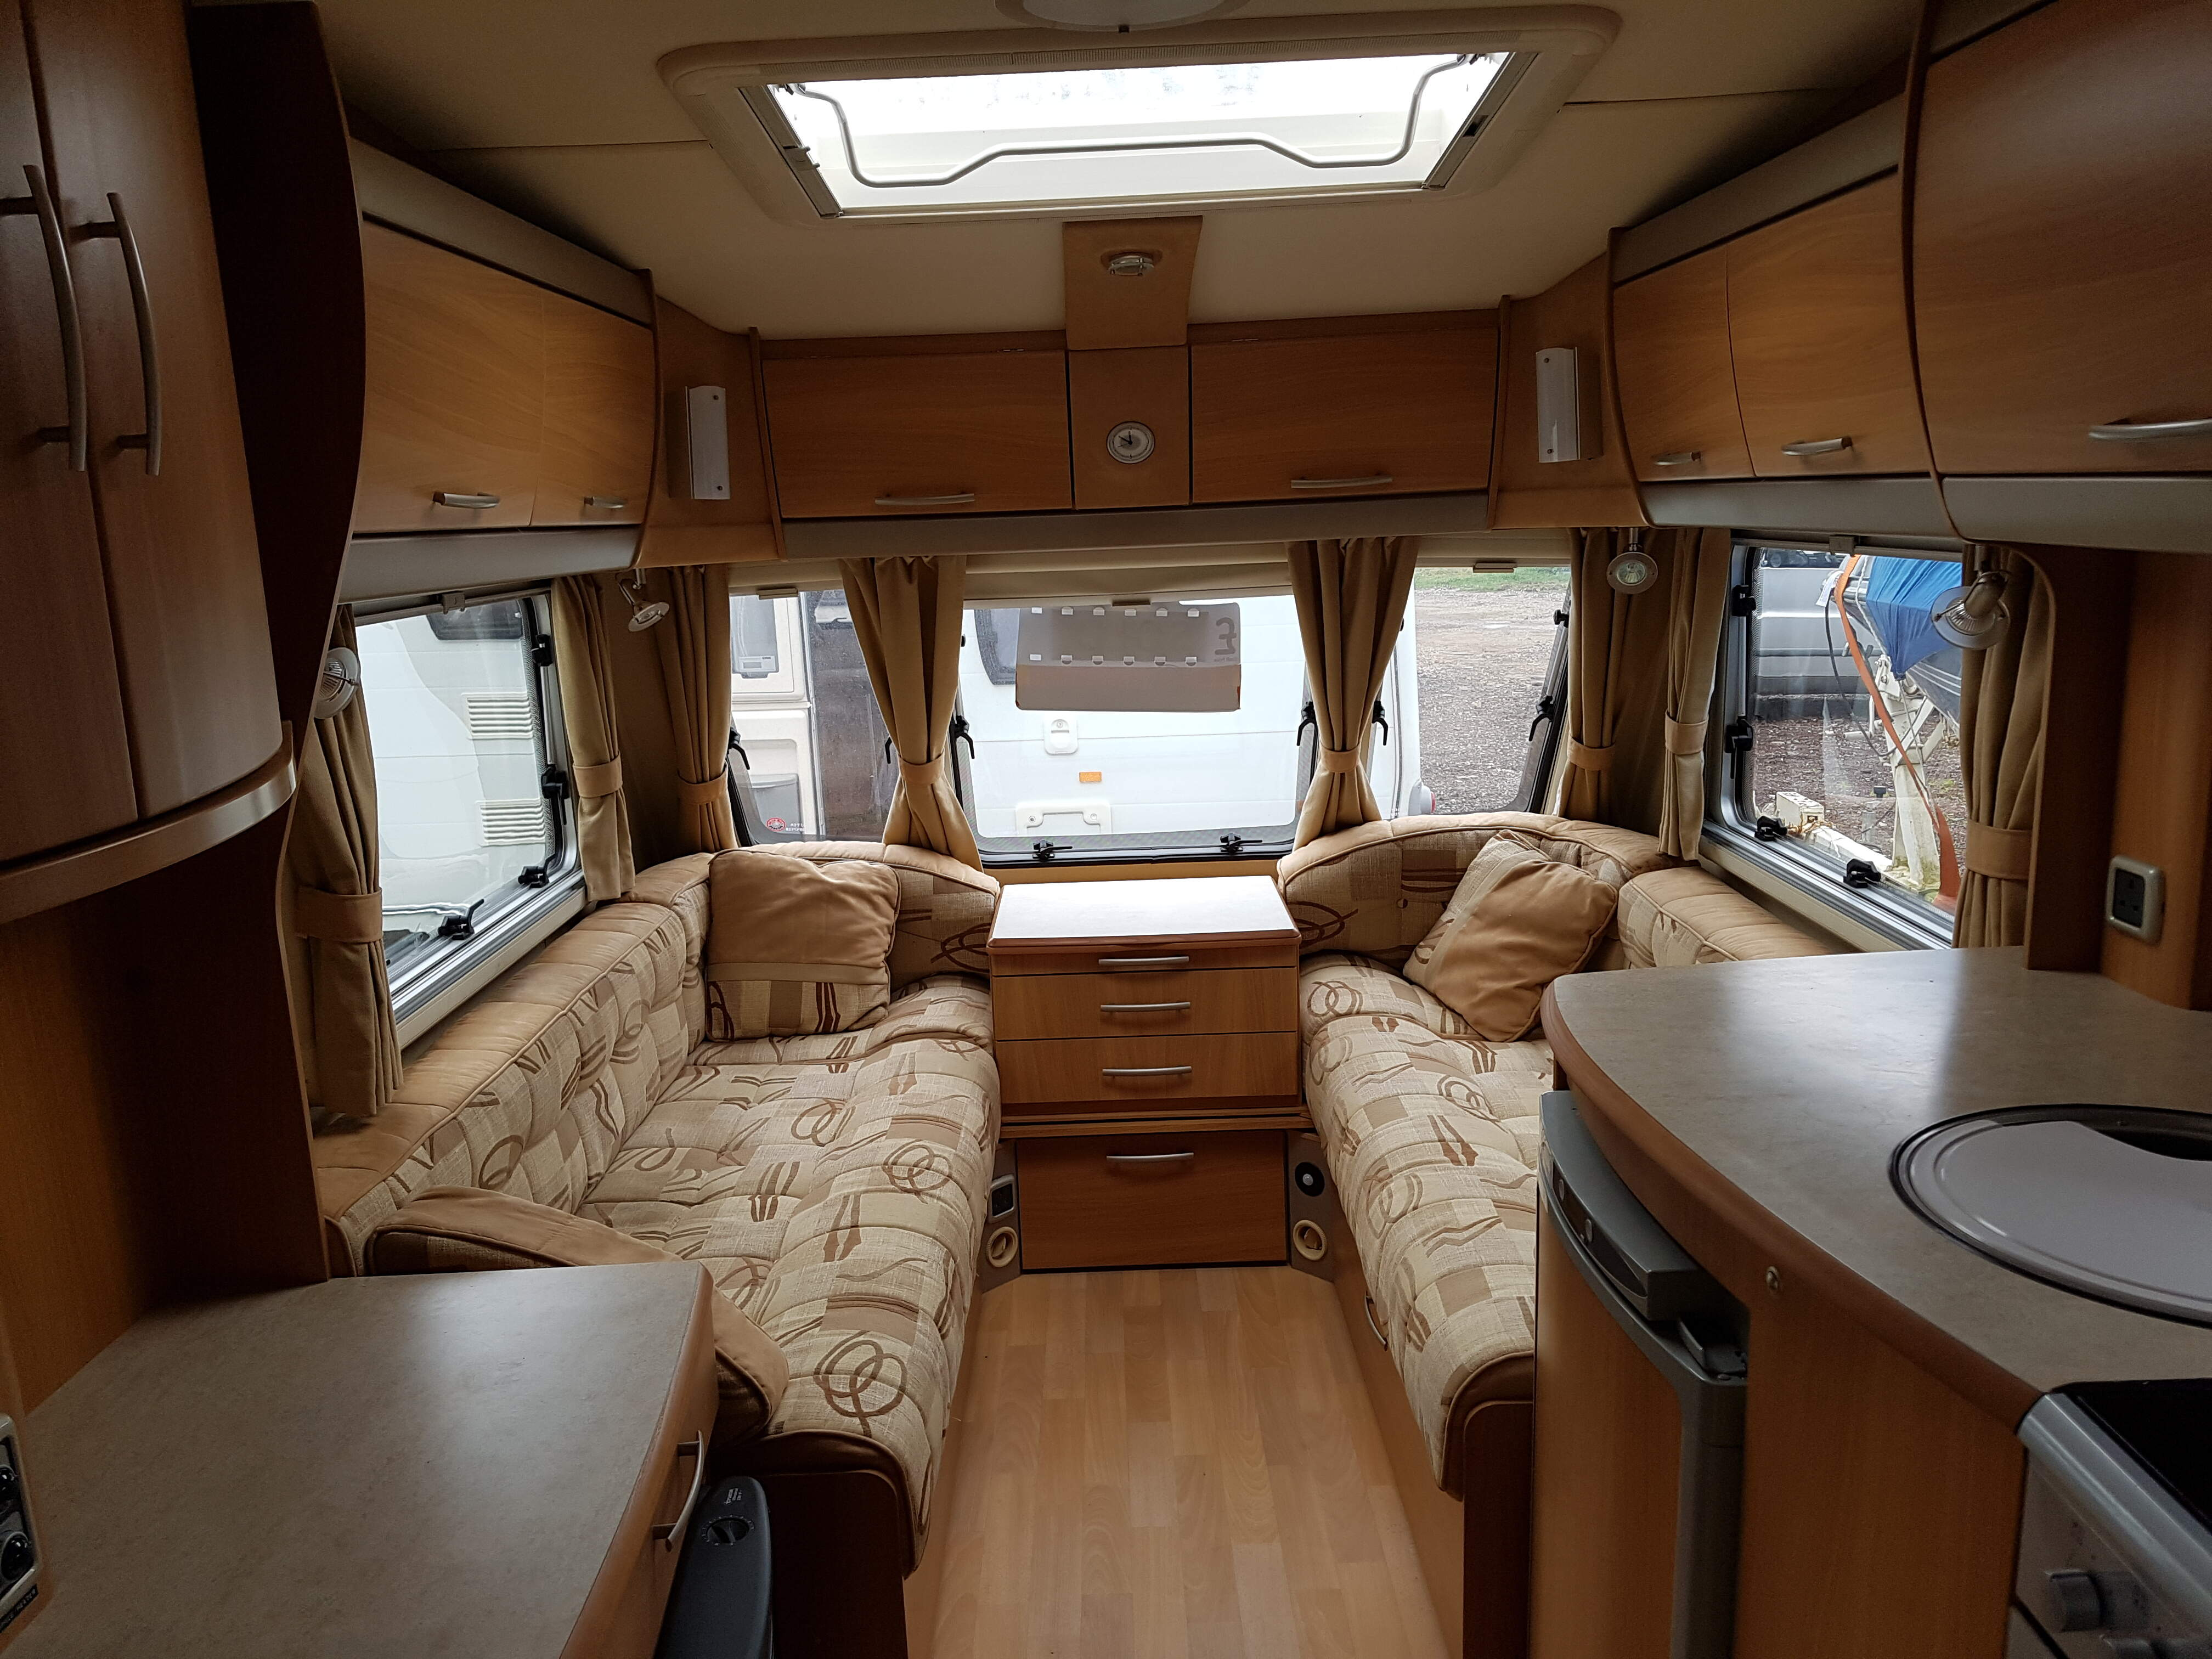 NOW SOLD 2006 Swift Challenger 480 2 Berth End Washroom Caravan with Awning